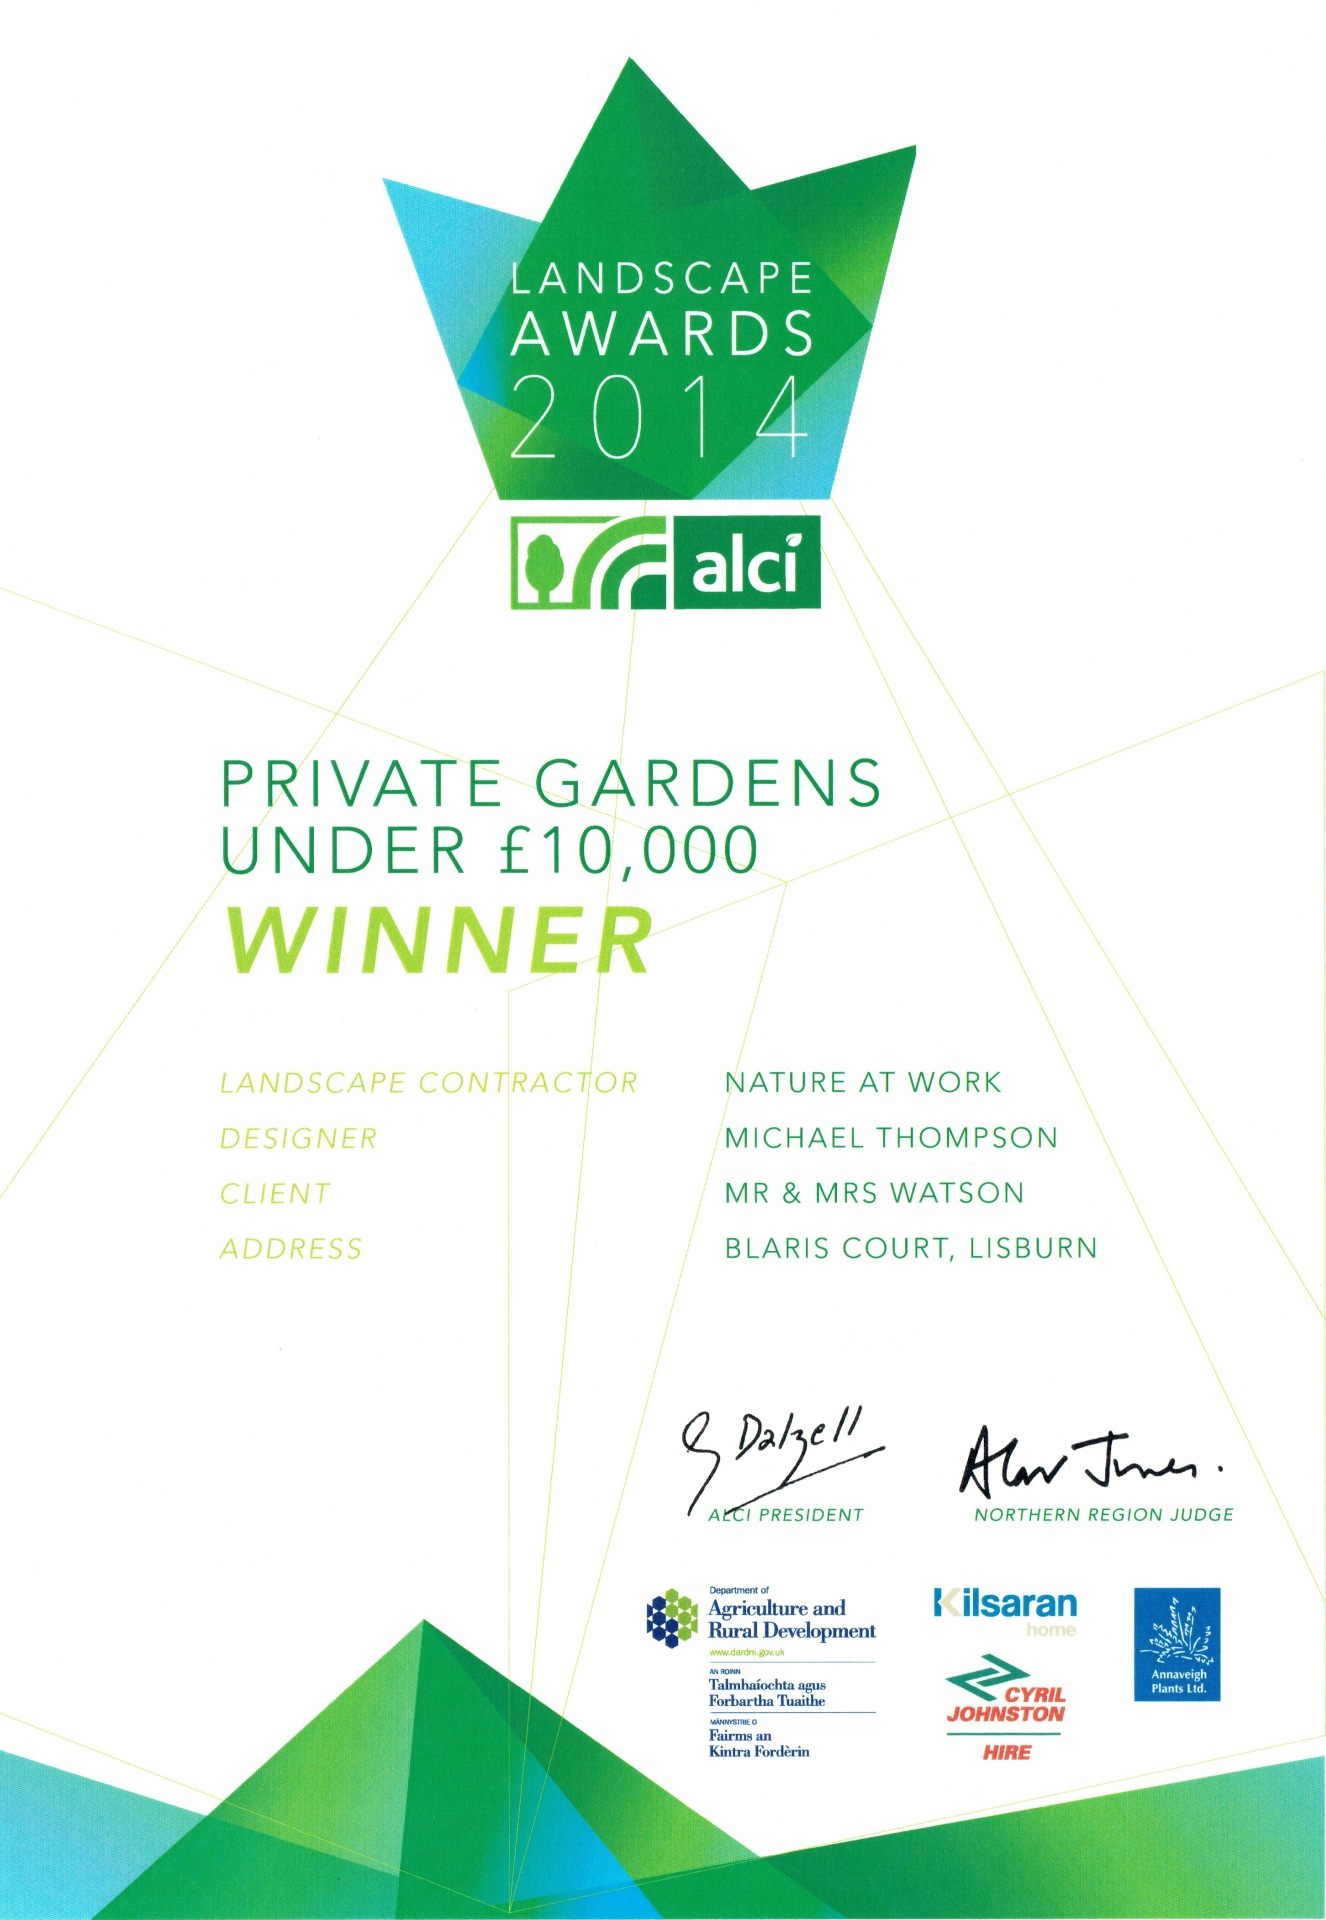 ALCI Landscape Awards 2014 Private Gardens Under £10,000